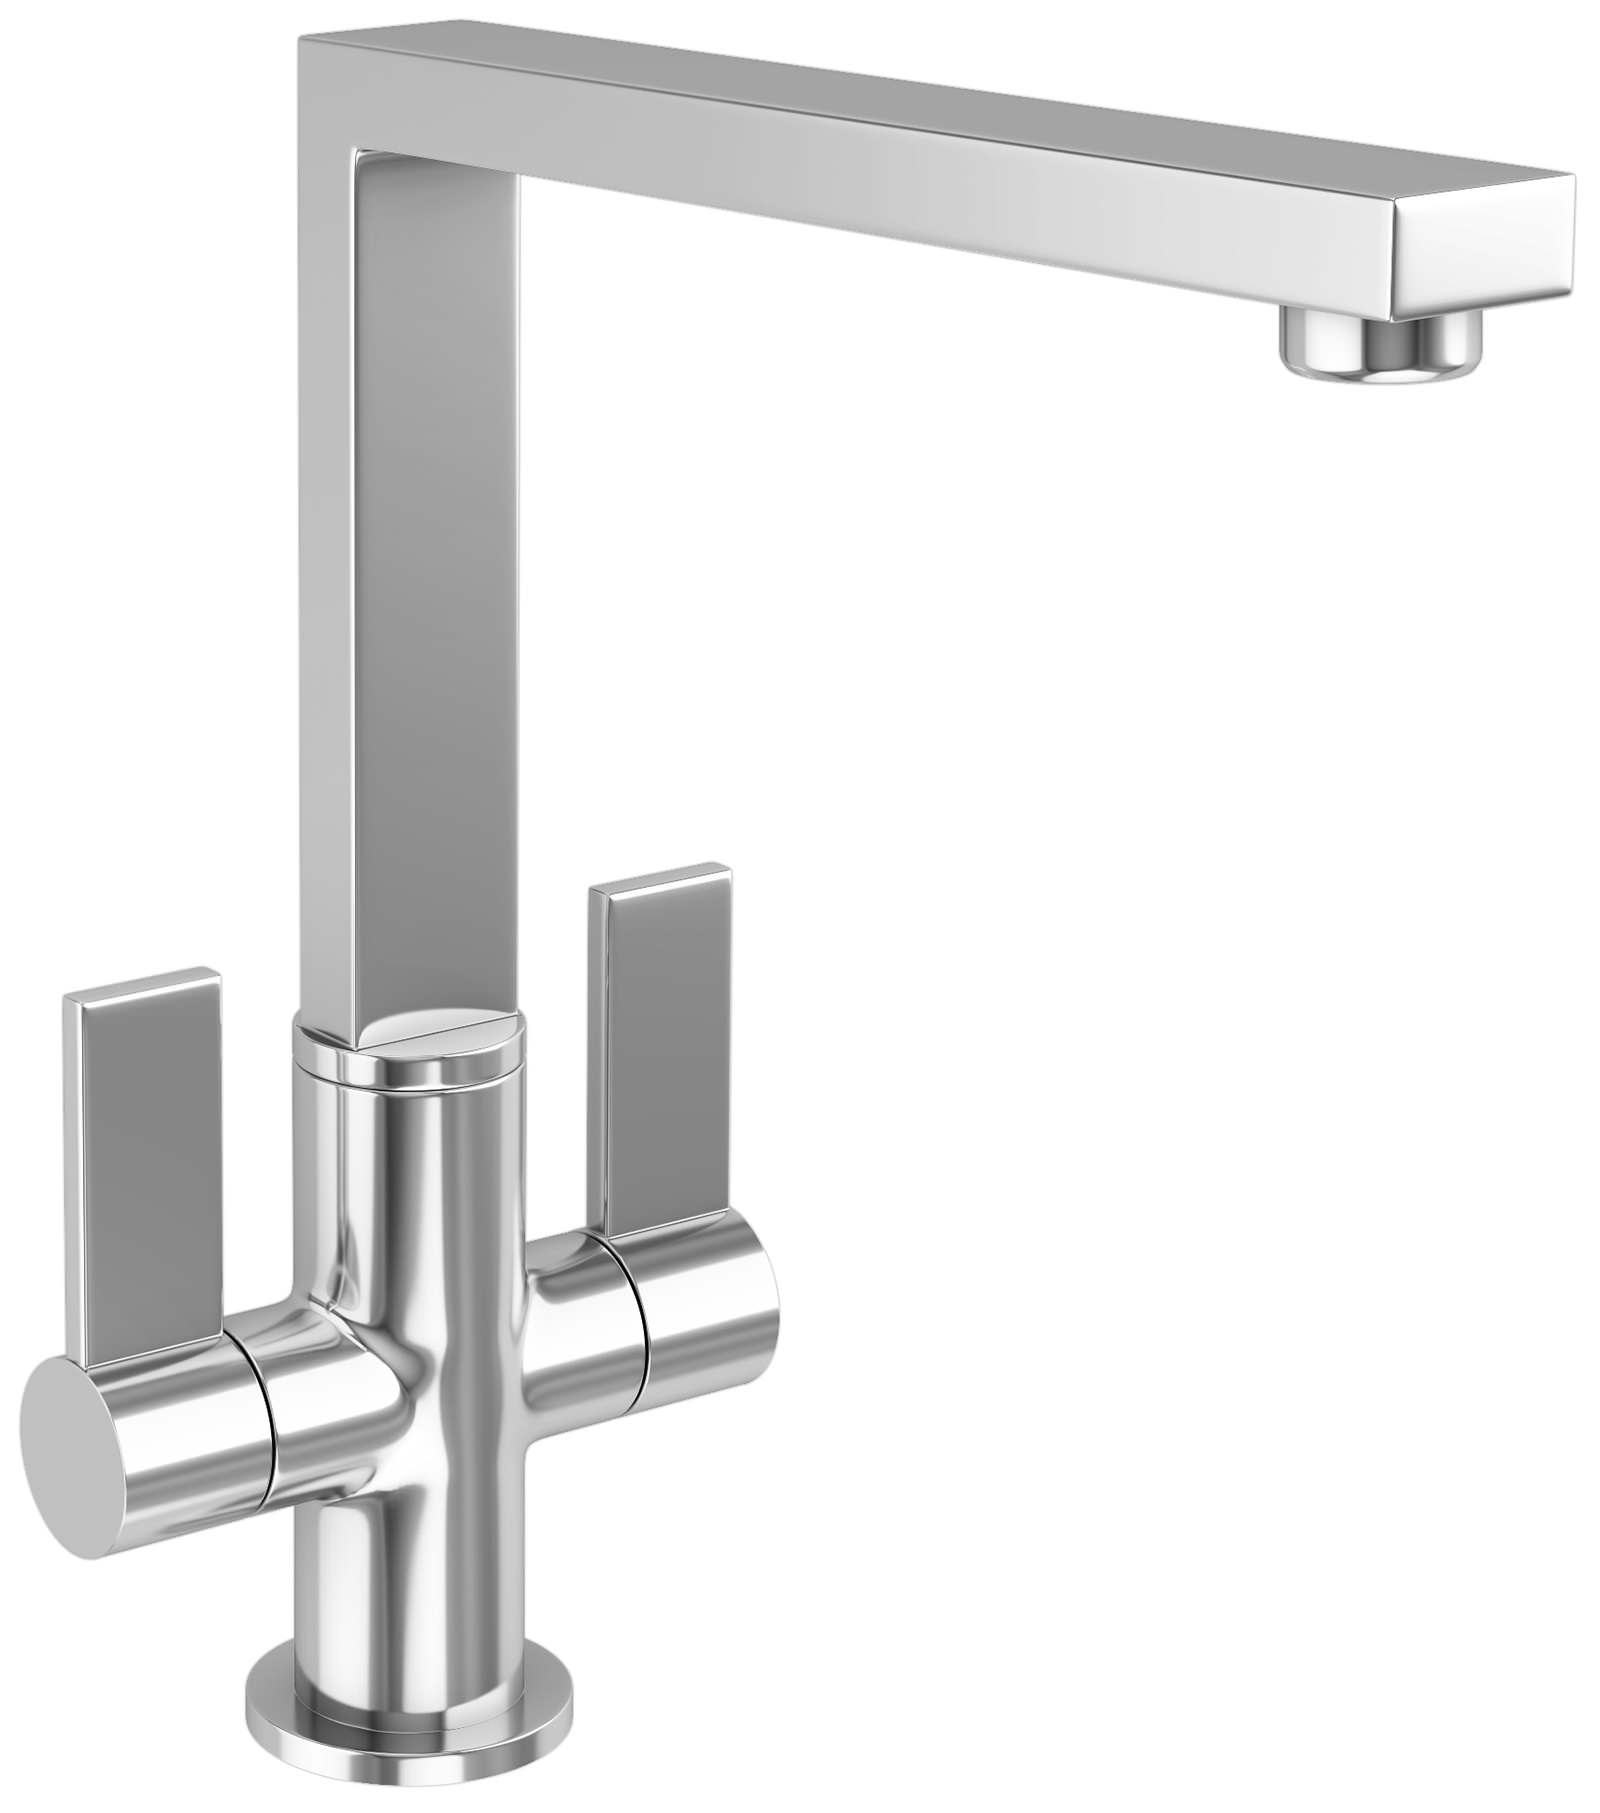 ... taps kitchen mixer taps franke bern kitchen sink mixer tap chrome